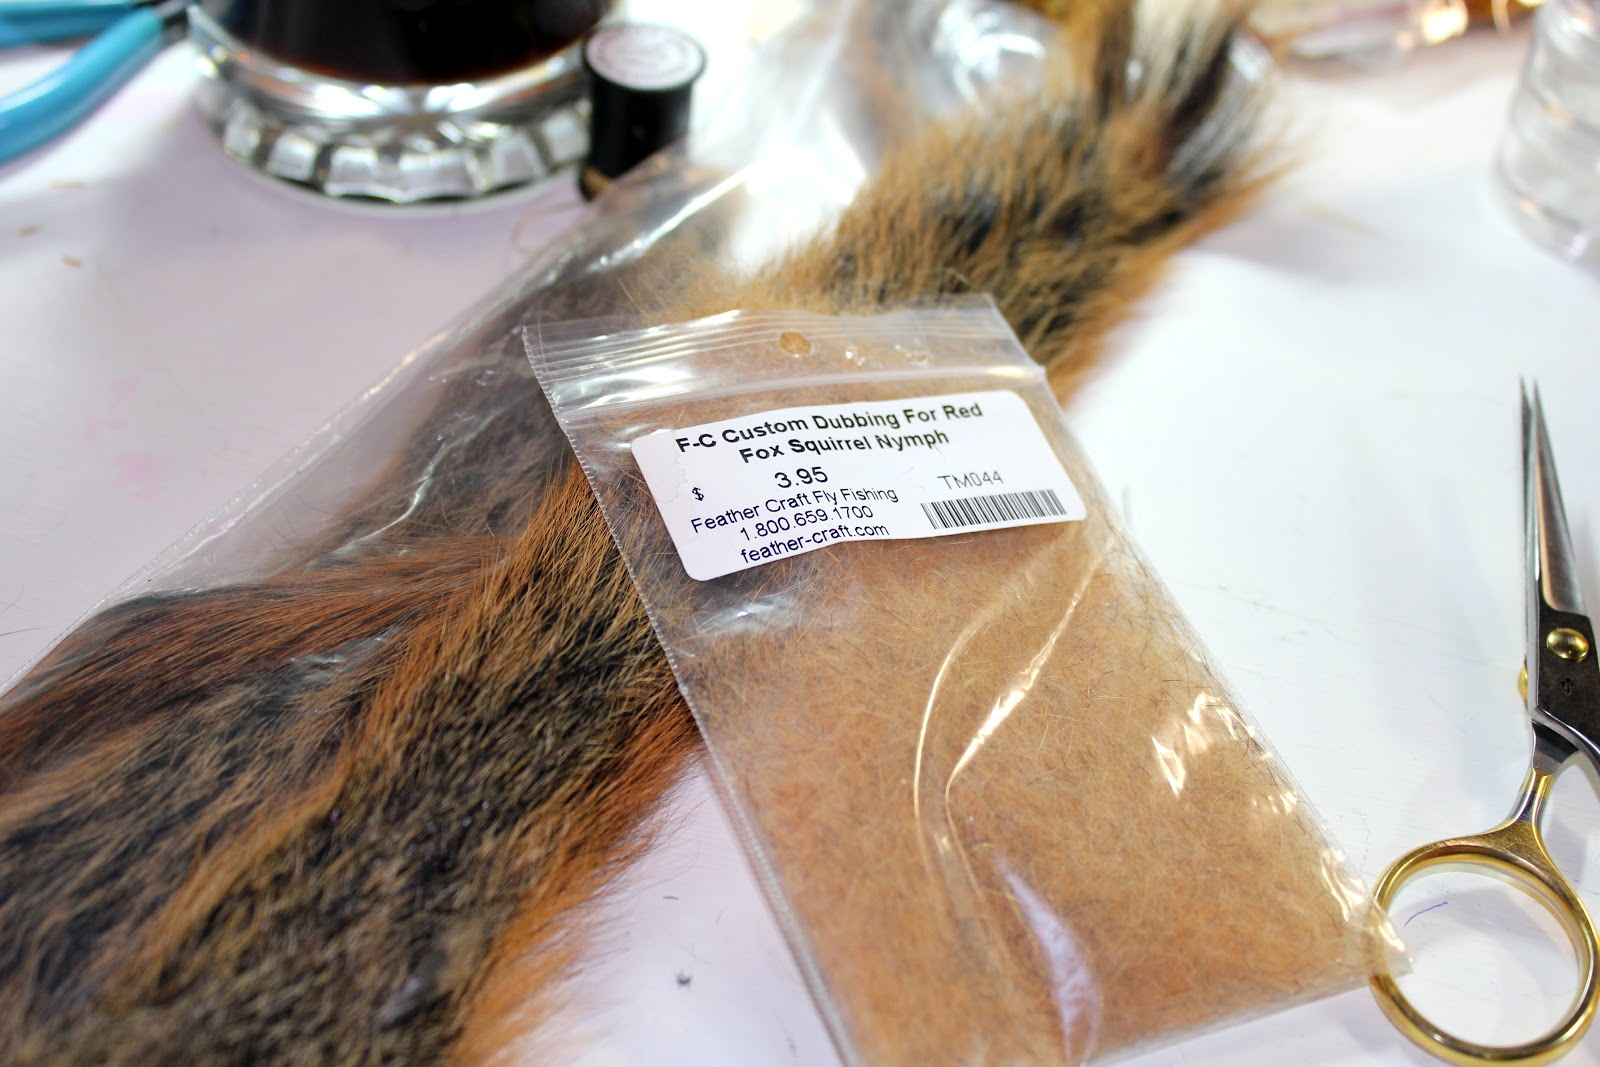 Fox Squirrel Materials